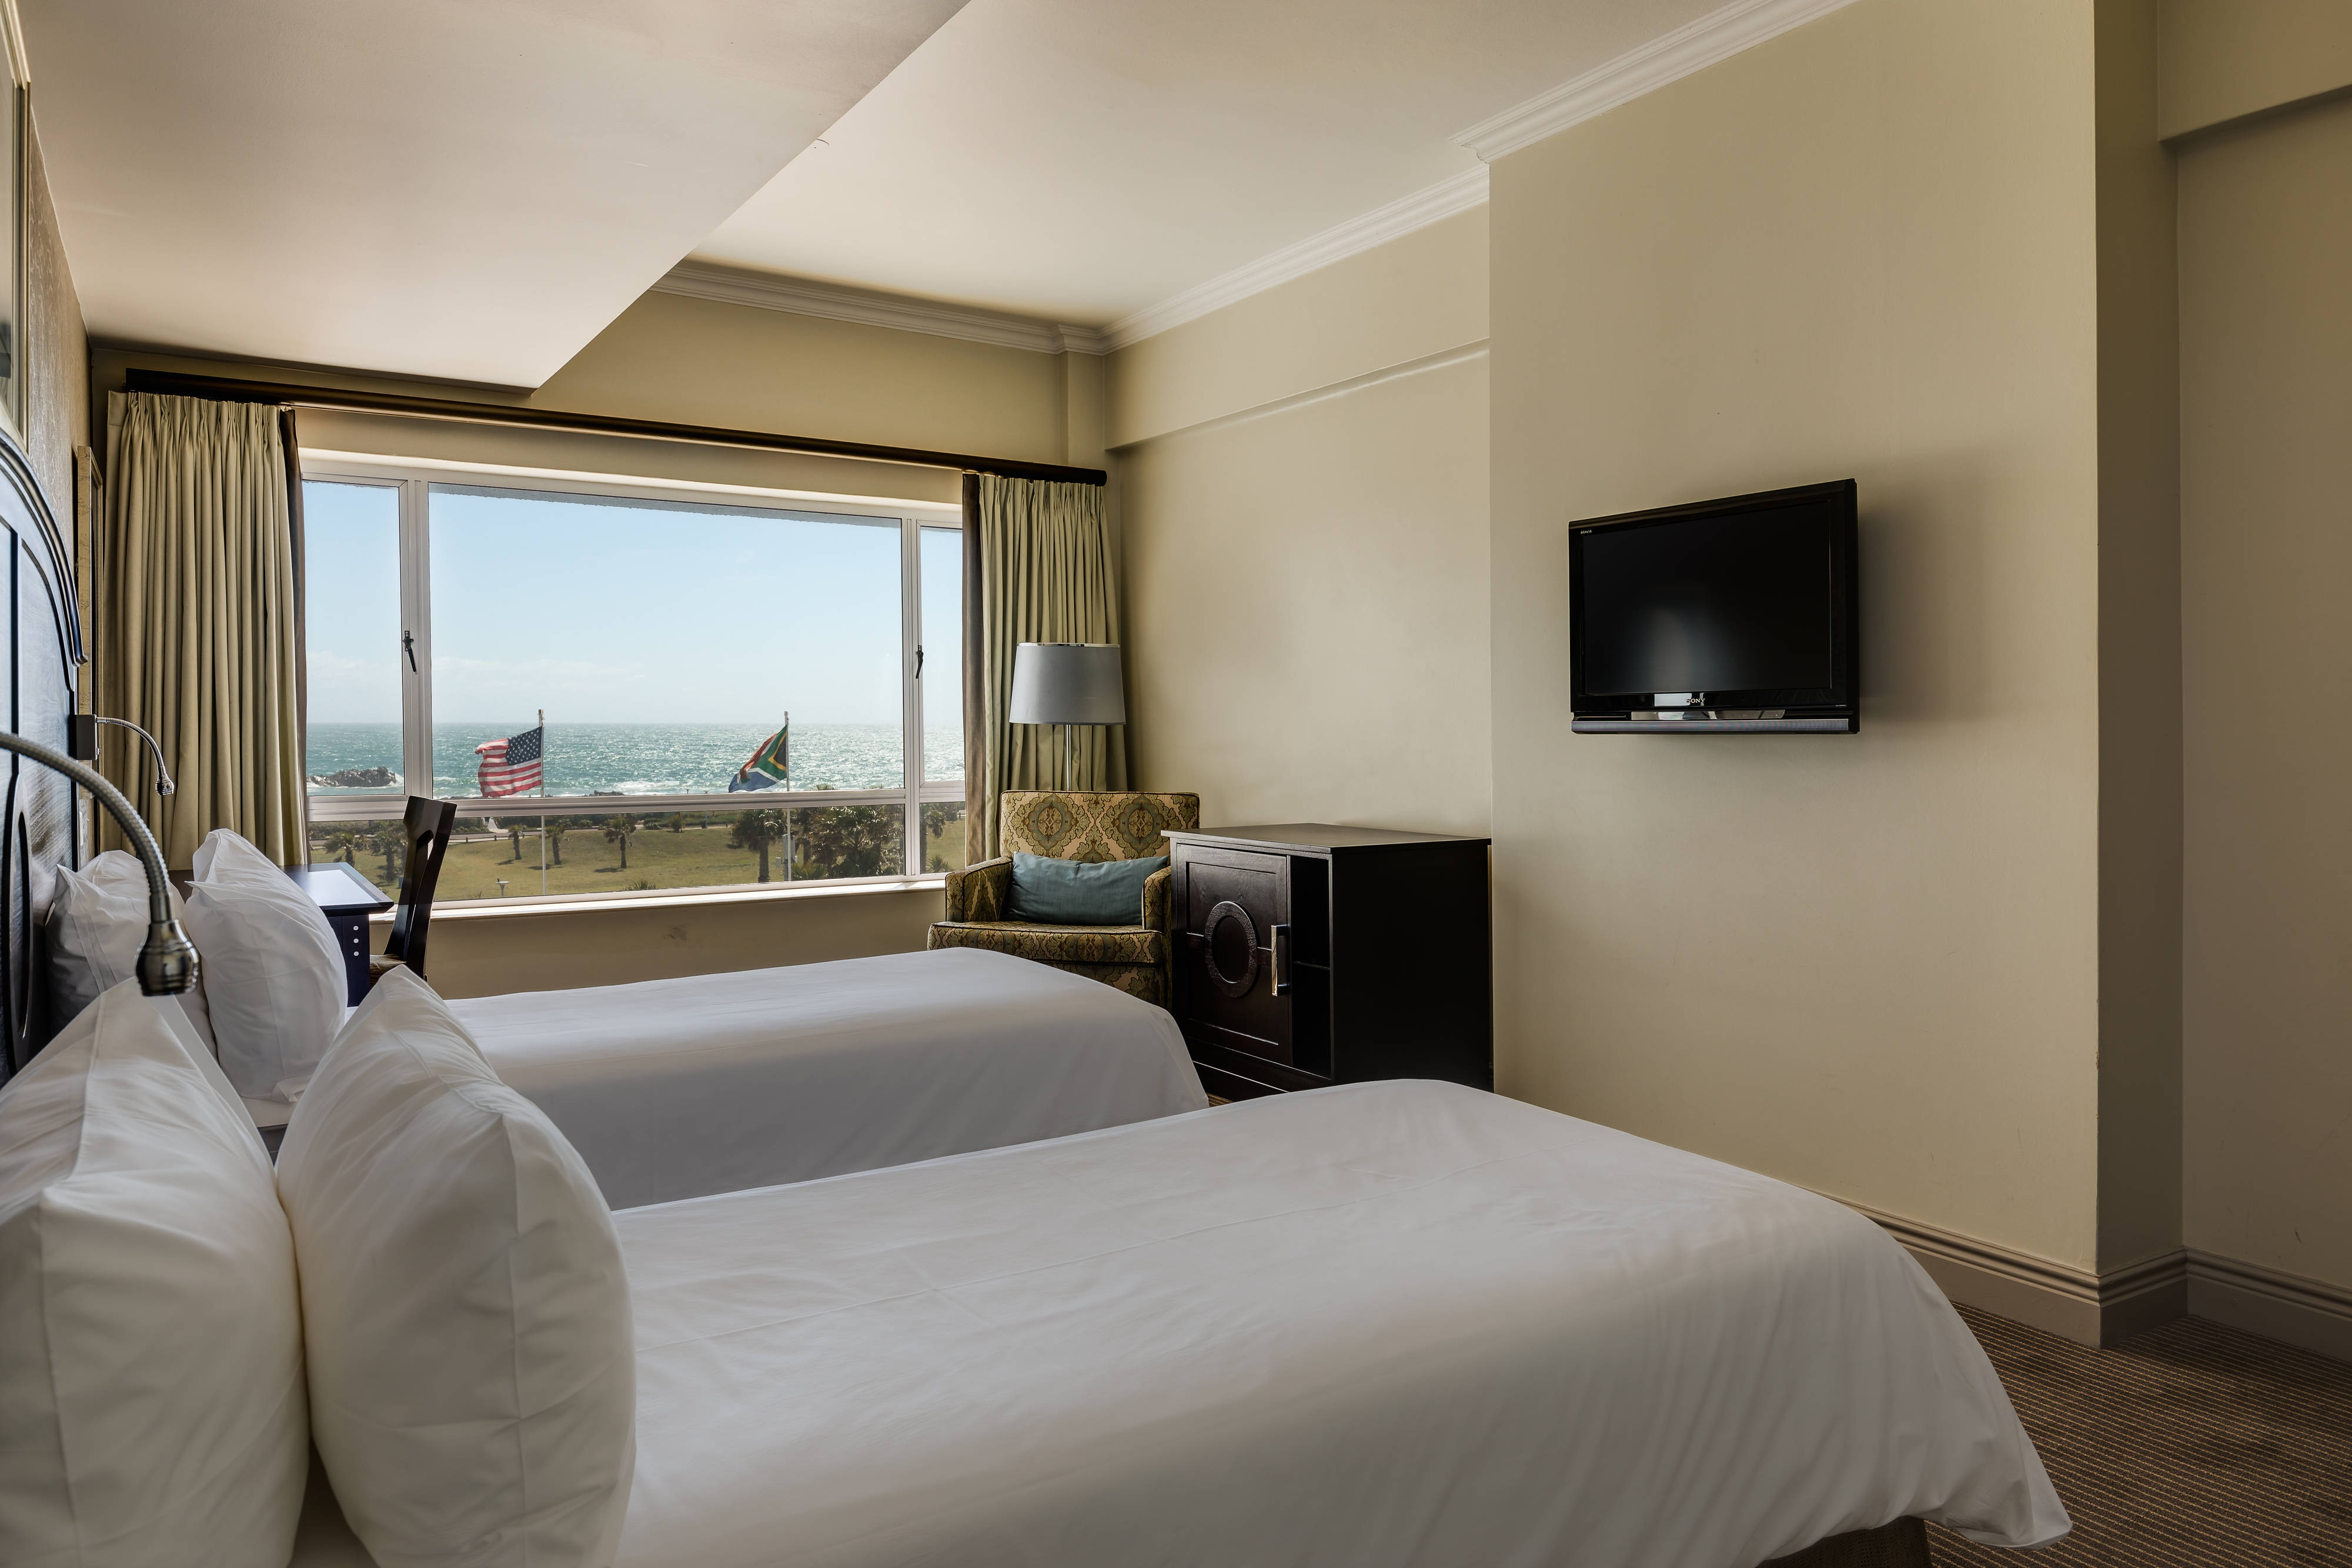 Hotel Accommodation In Eastern Cape Protea Hotel Port